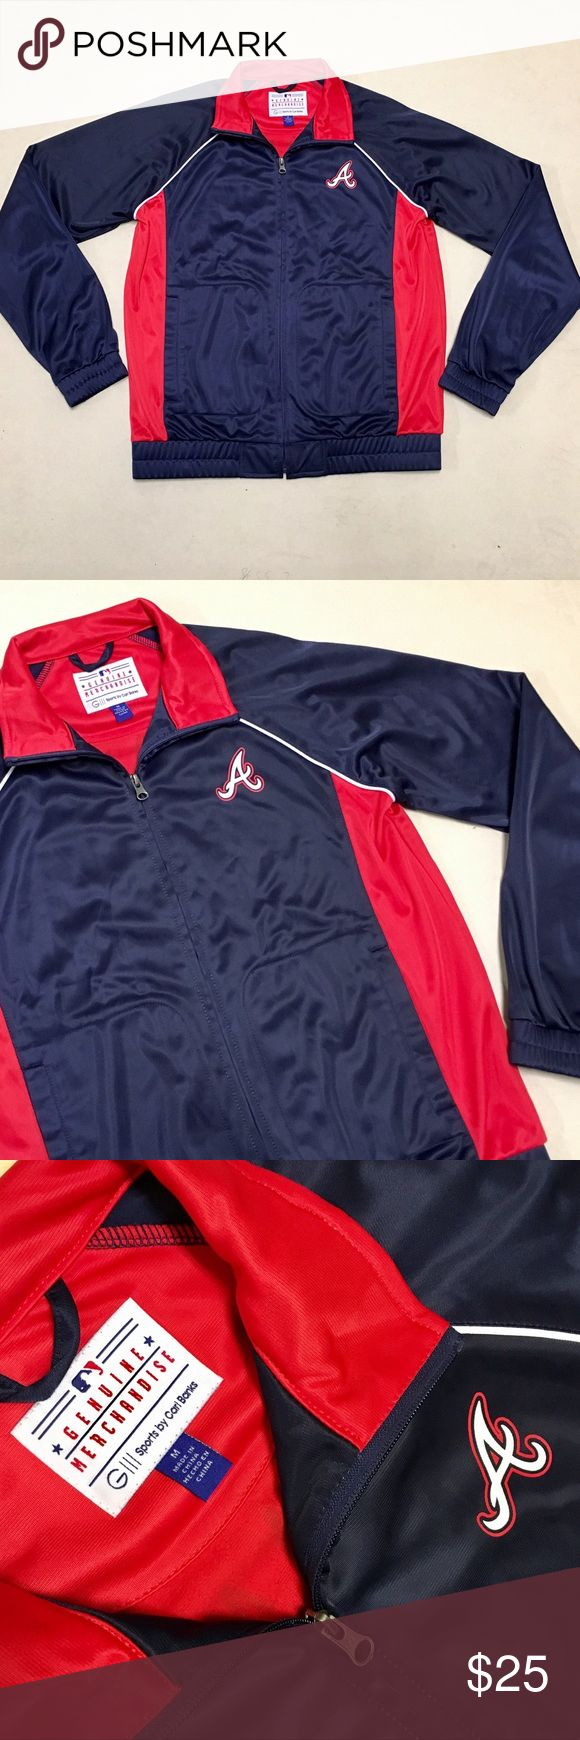 Atlanta Braves - Womens Rhinestone Track Jacket ❤️ Atlanta Braves  Zip-up Rhinestone Zip-up Jacket   Size Women's Medium    💎 Rhinestone Logo on back 💎 New without tags!!   ❤️⚾️💙 MLB Jackets & Coats